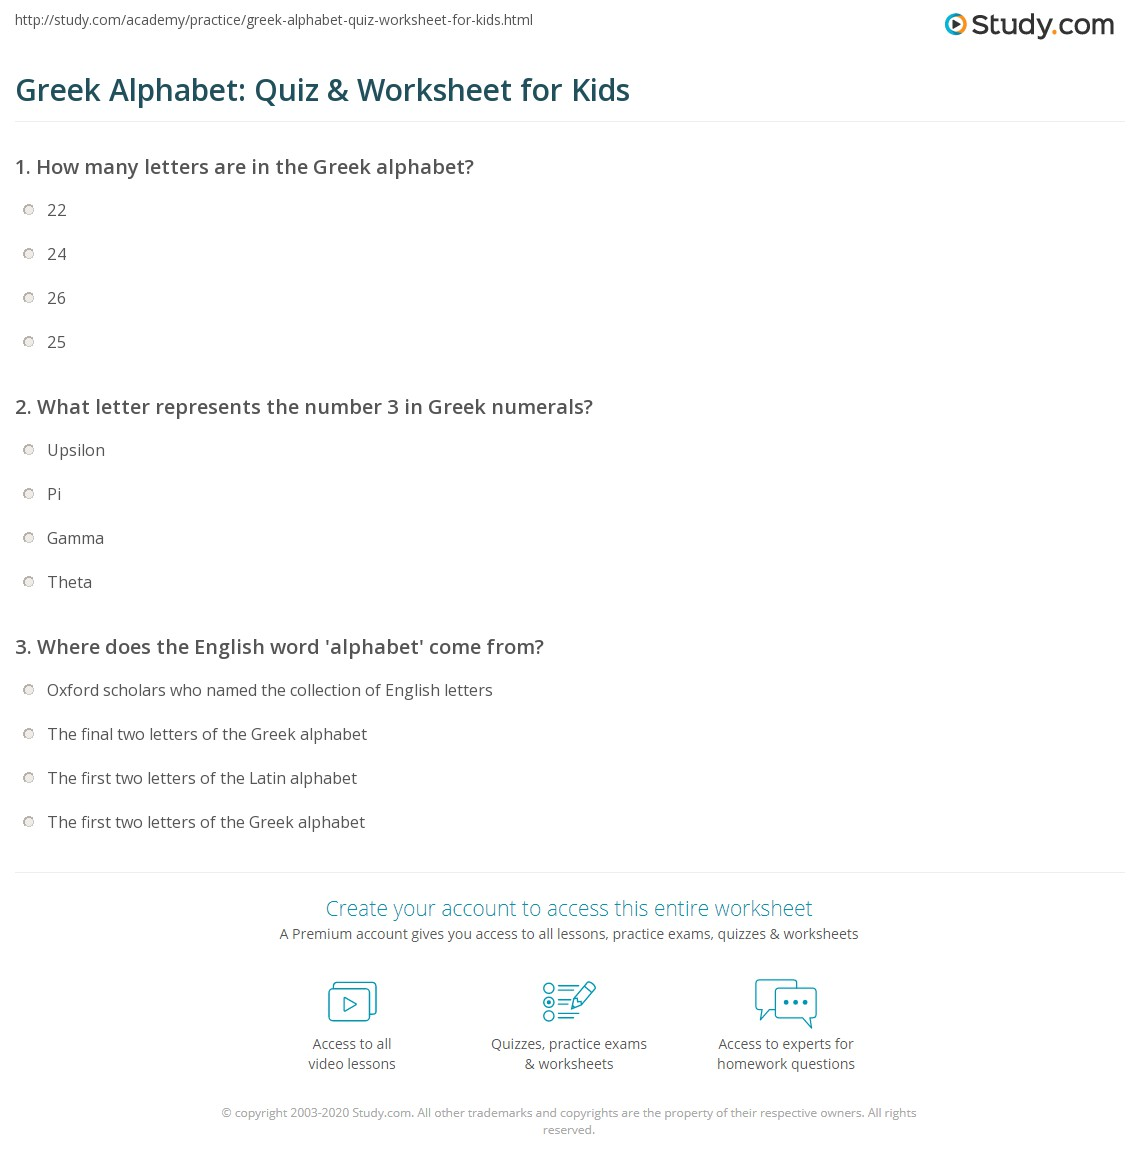 worksheet Alphabet Worksheets Ks2 greek alphabet quiz worksheet for kids study com print lesson worksheet